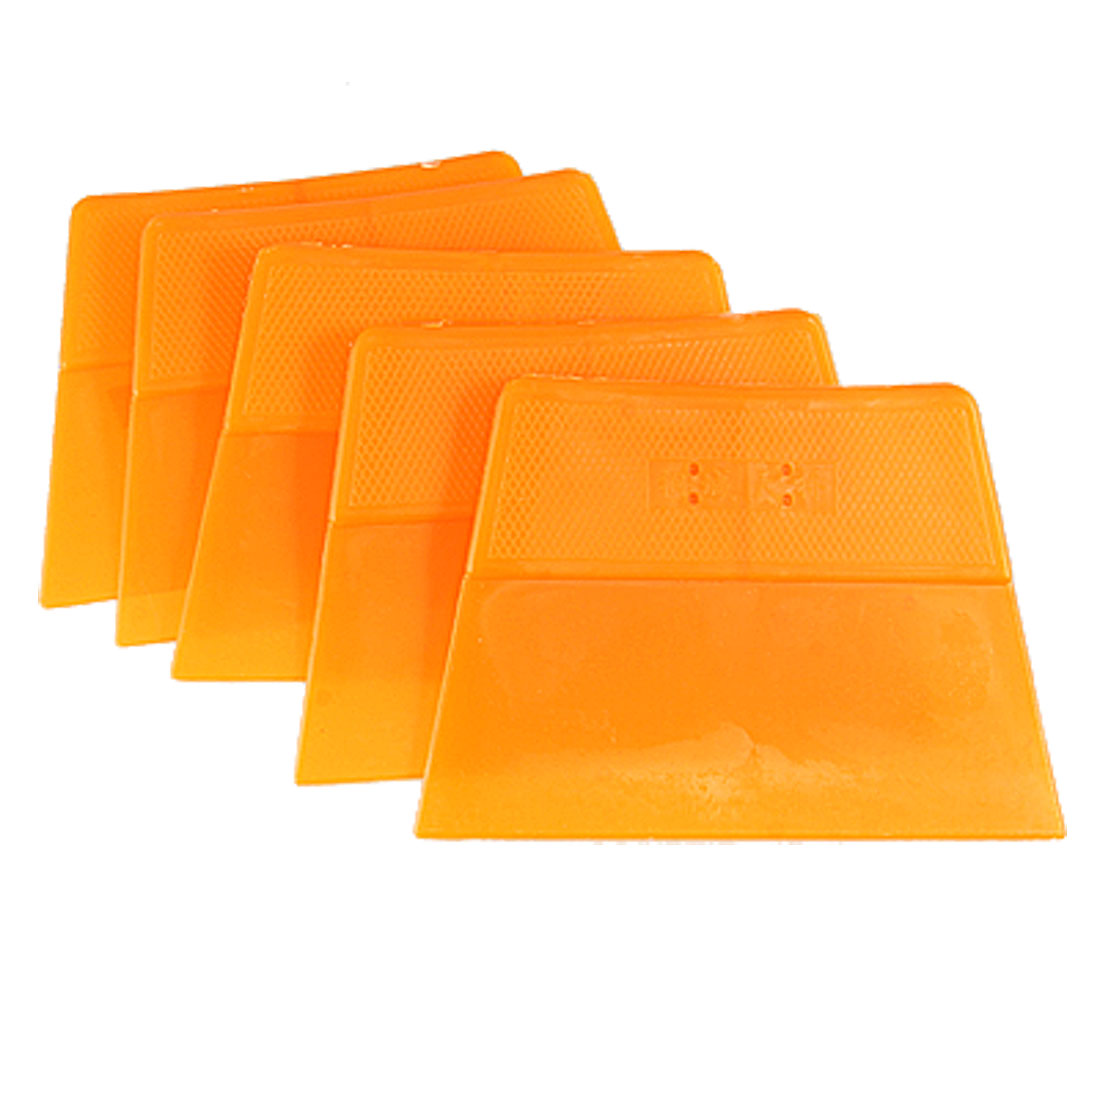 5 Pcs Nonslip Handle Car Auto Windshield Film Scraper Orange